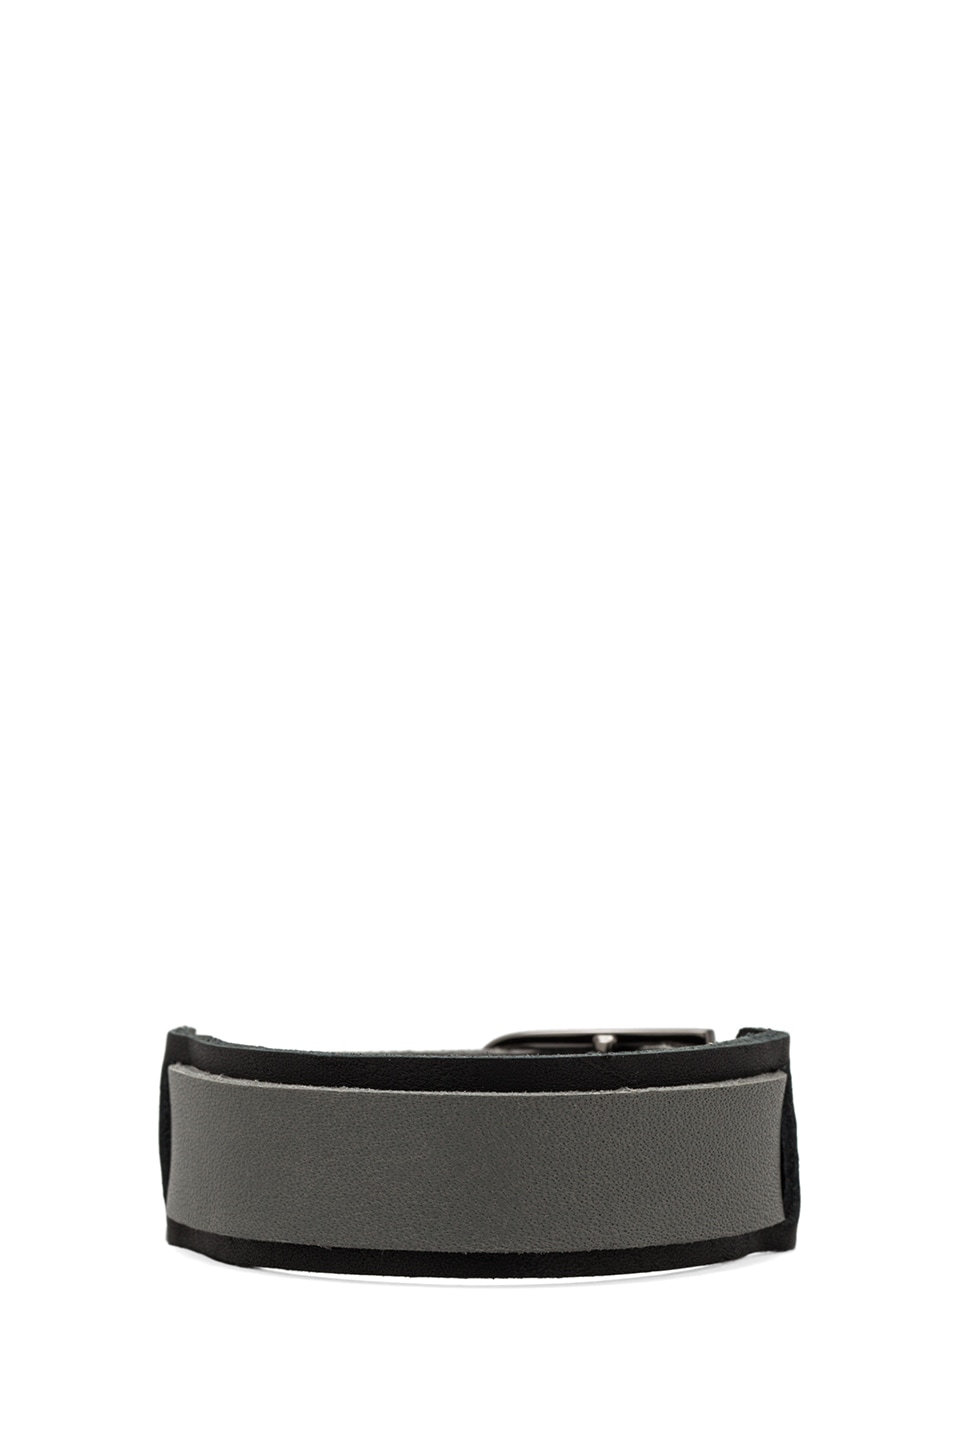 Griffin Dillan Cuff in Black/Grey